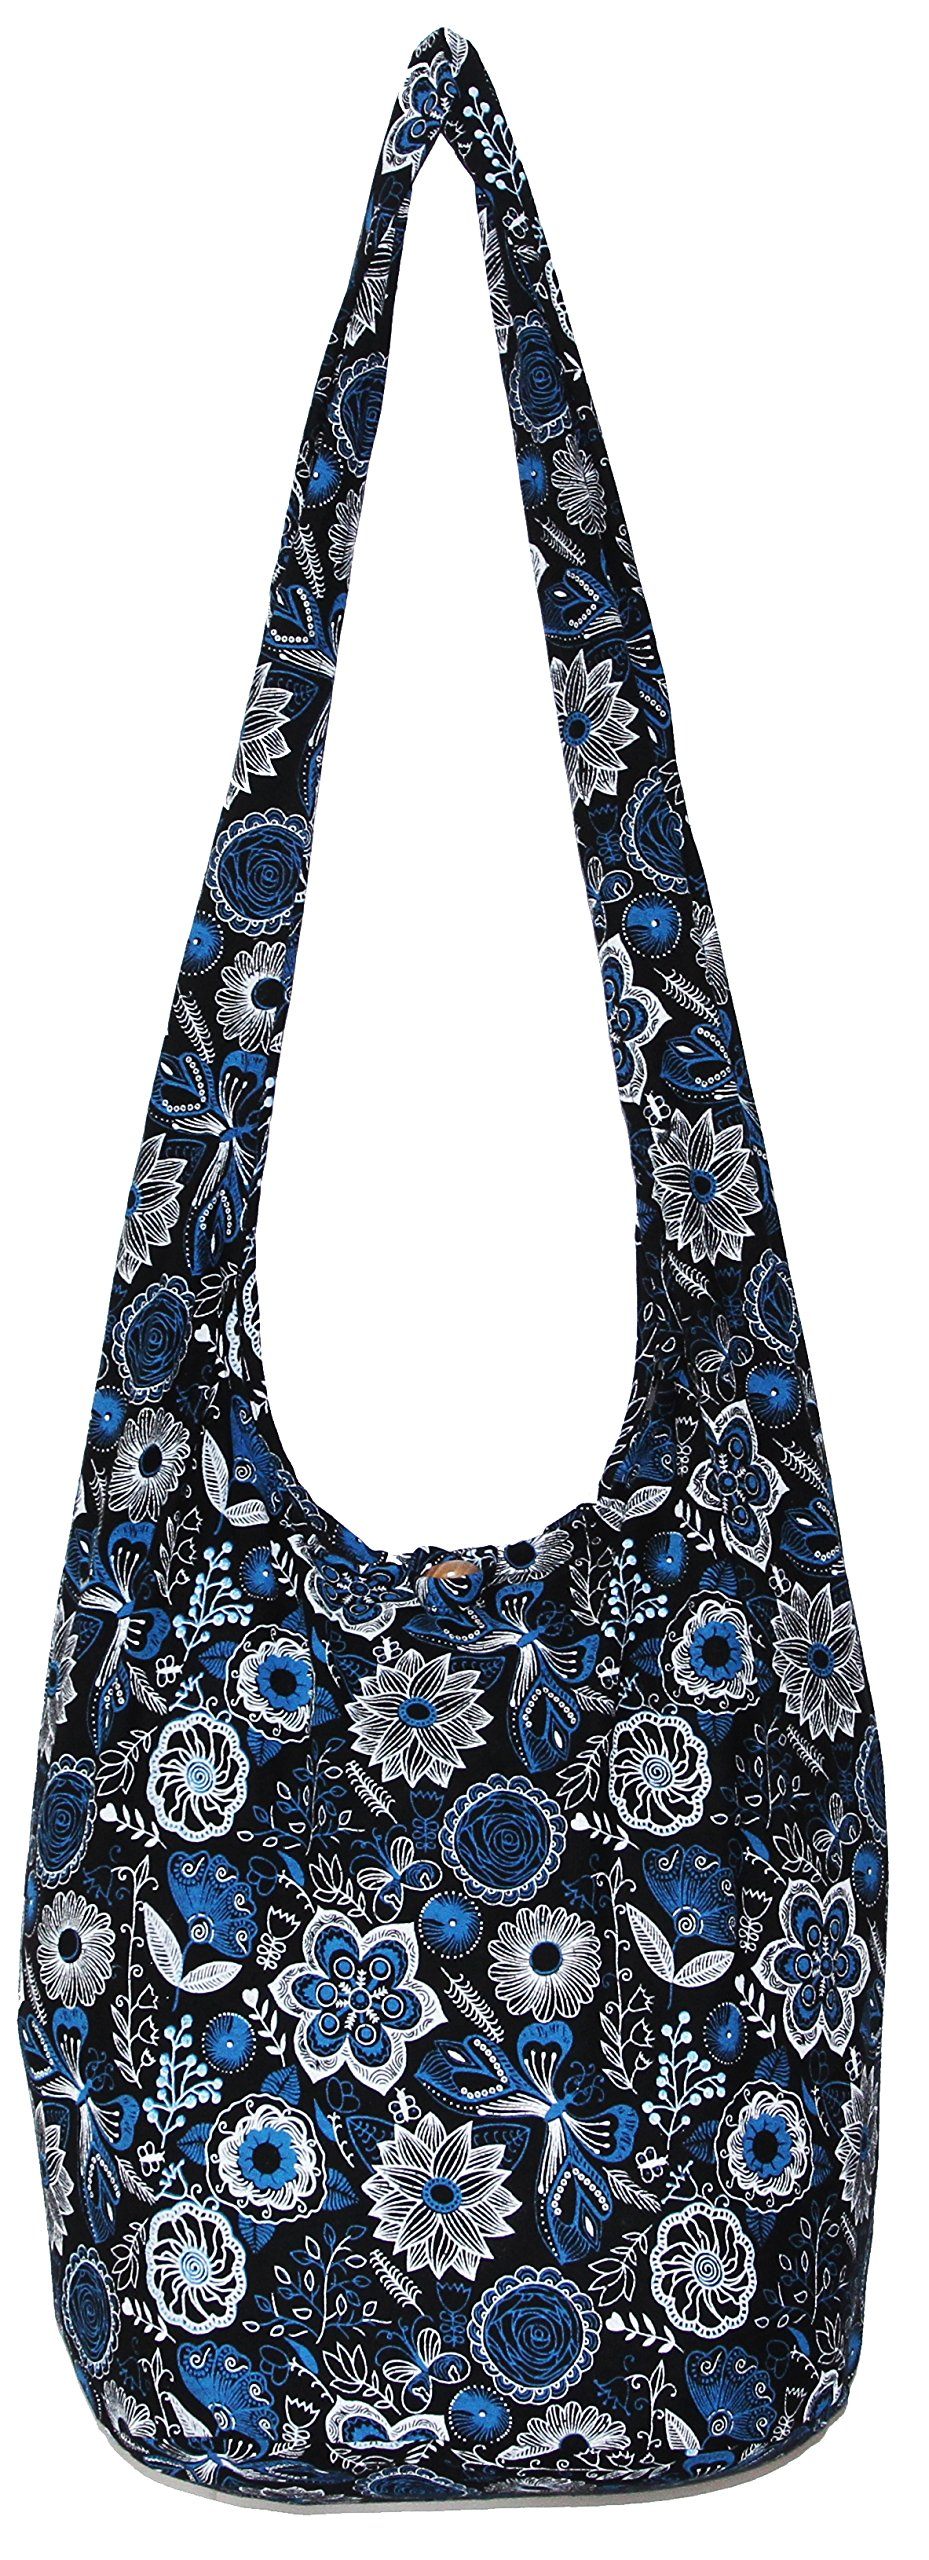 Flower Bohemian Hippie Hipster Hobo Boho Crossbody Shoulder Bag (DarkBlue) by All Best Thing (Image #1)